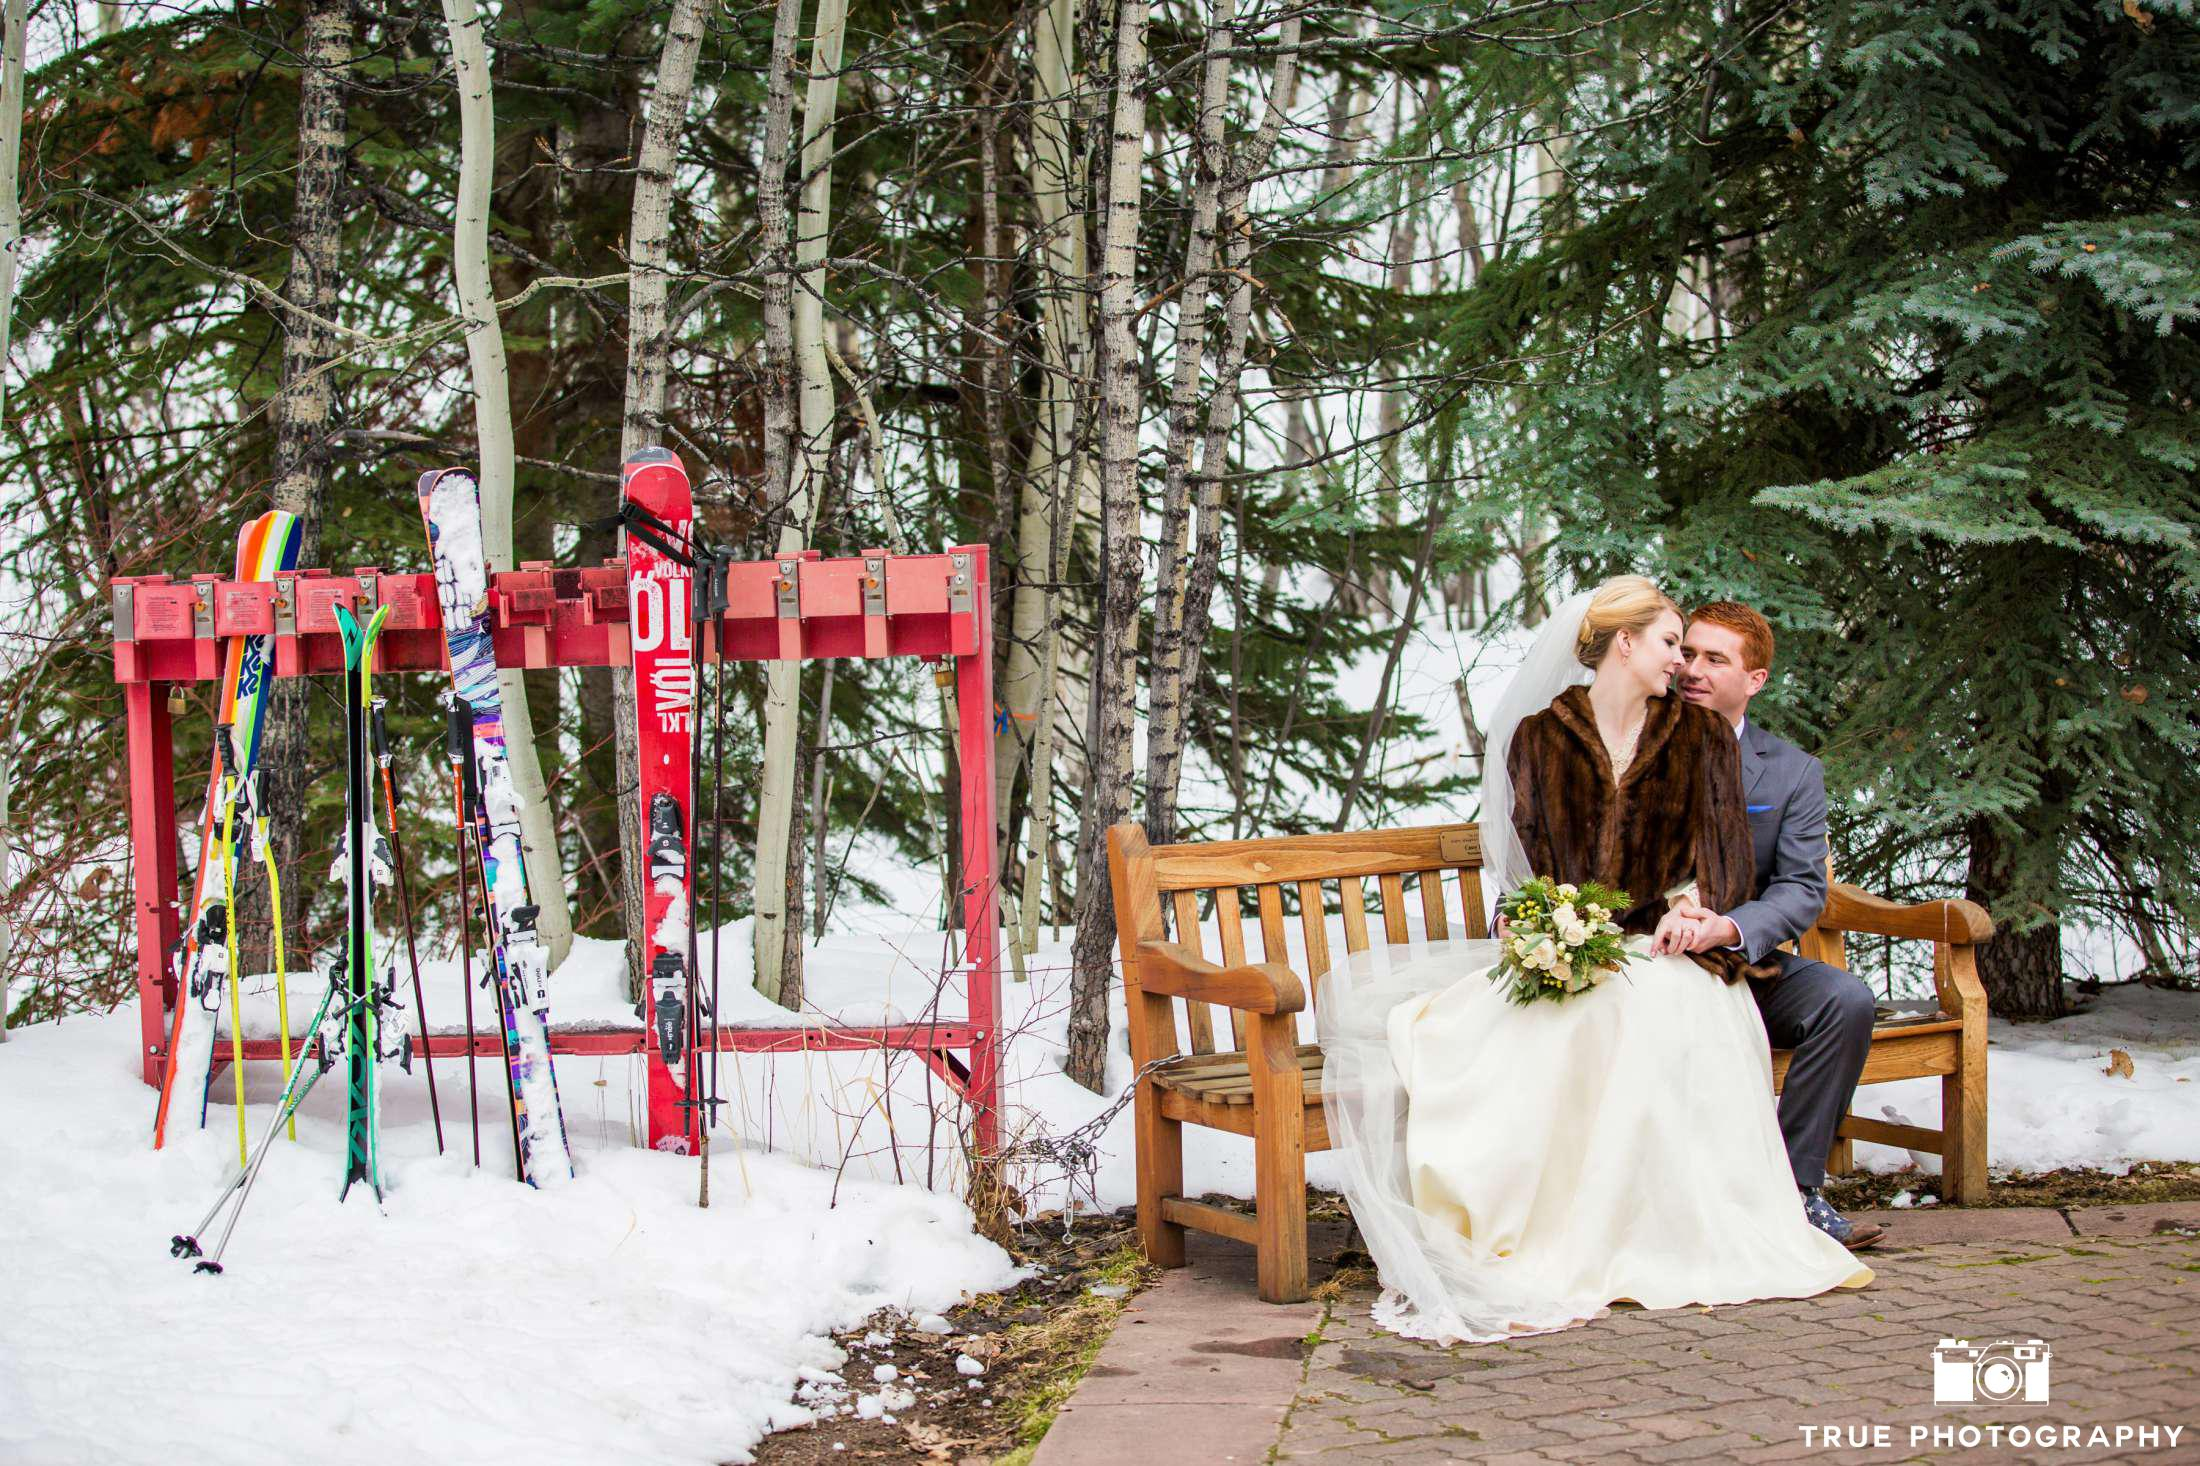 Sustainable Ski Mountain Weddings - Ecopartytime  (Photo Credits: True Photography)